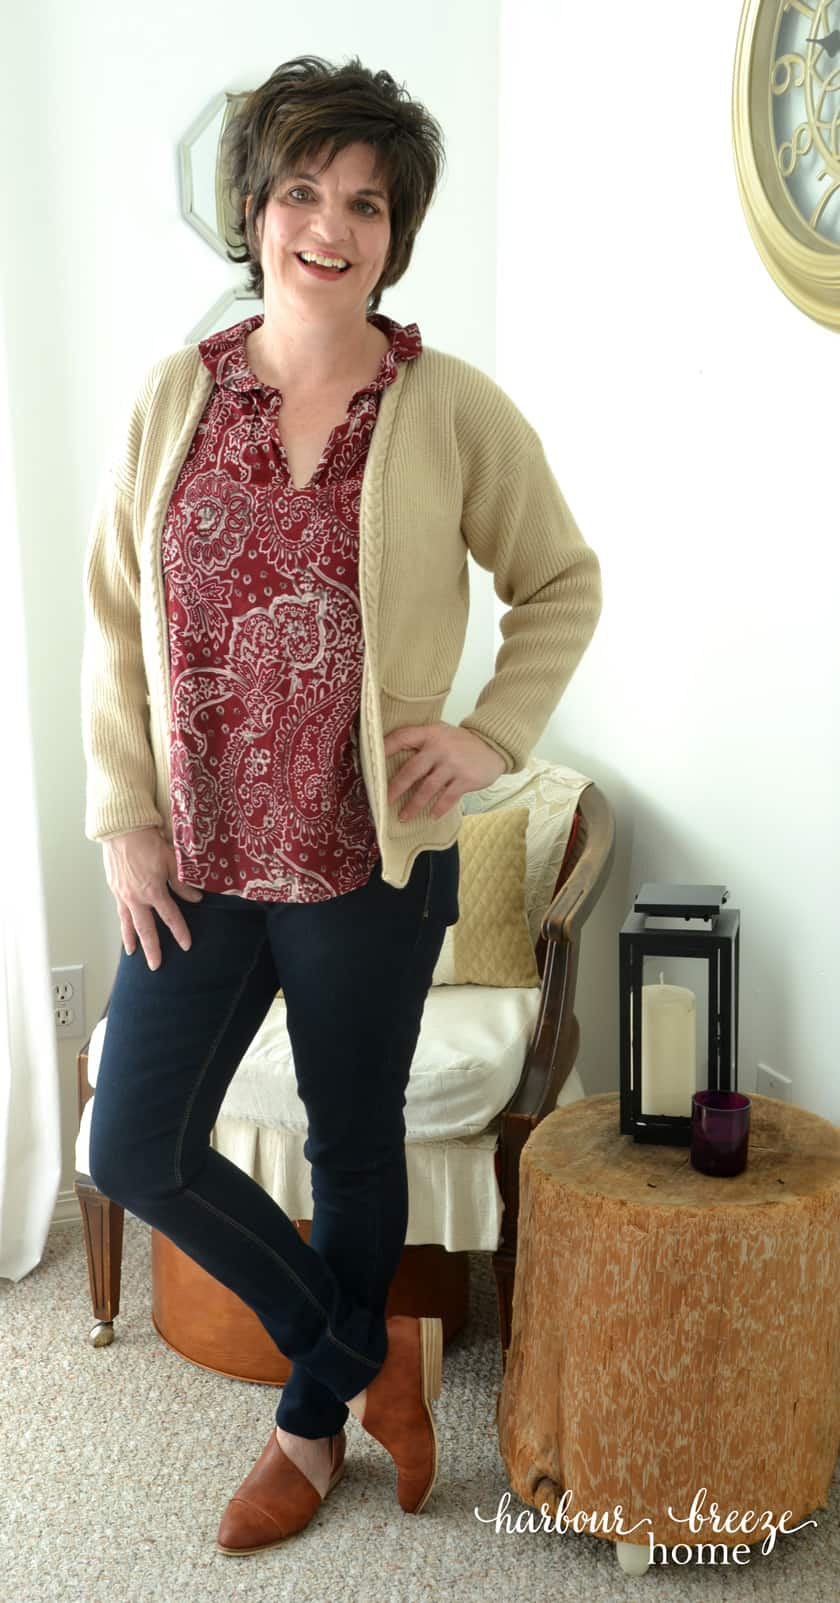 Woman standing wearing jeans, burgundy top, cream cardigan, and brown leather shoes